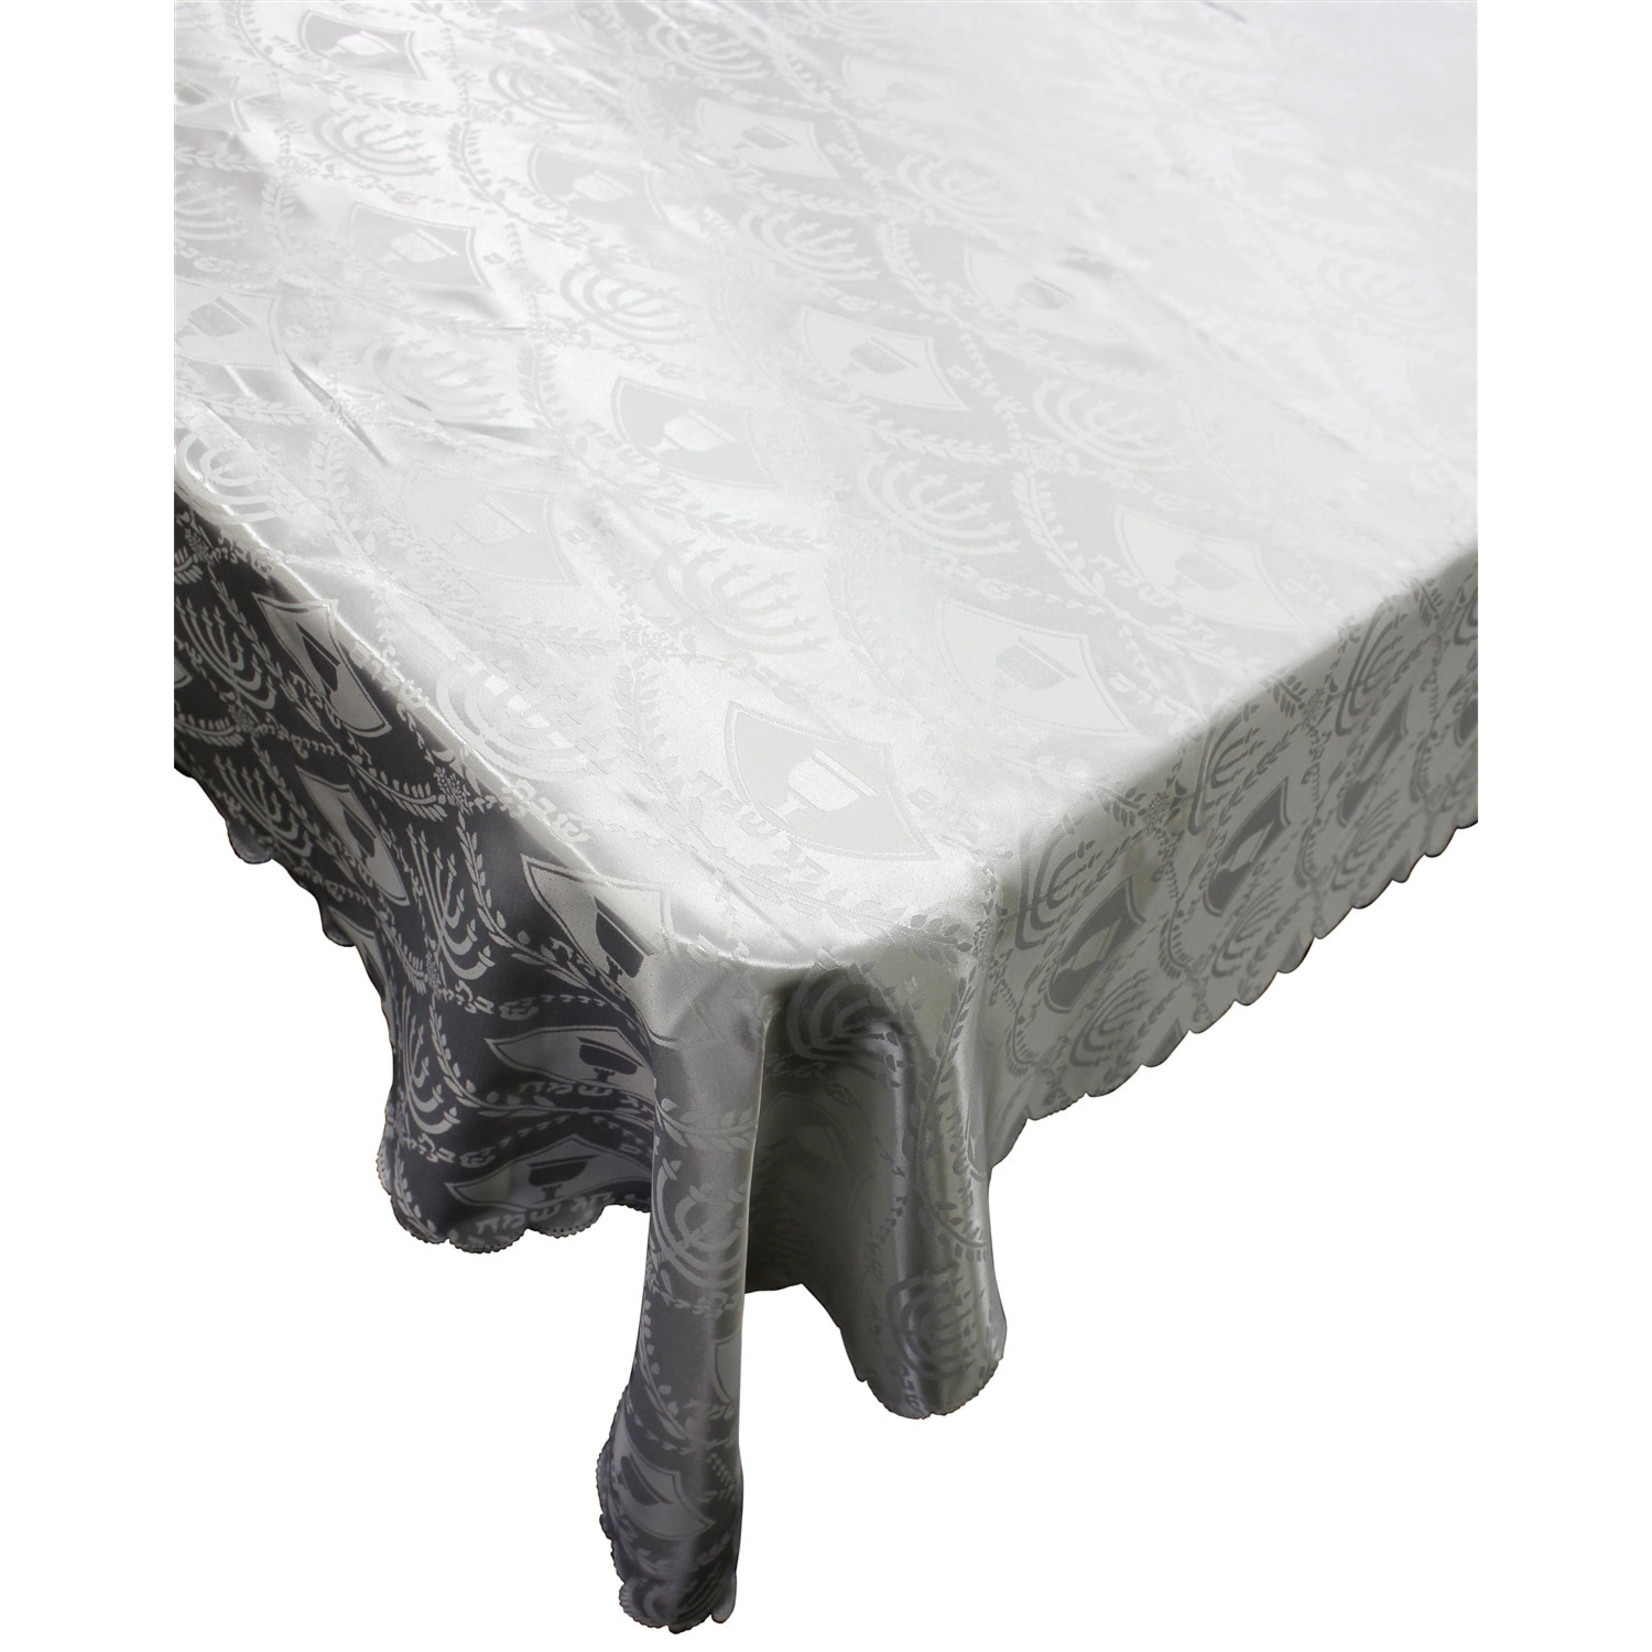 Stain-Resistant Tablecloth, 59x177 in (150x450 cm)